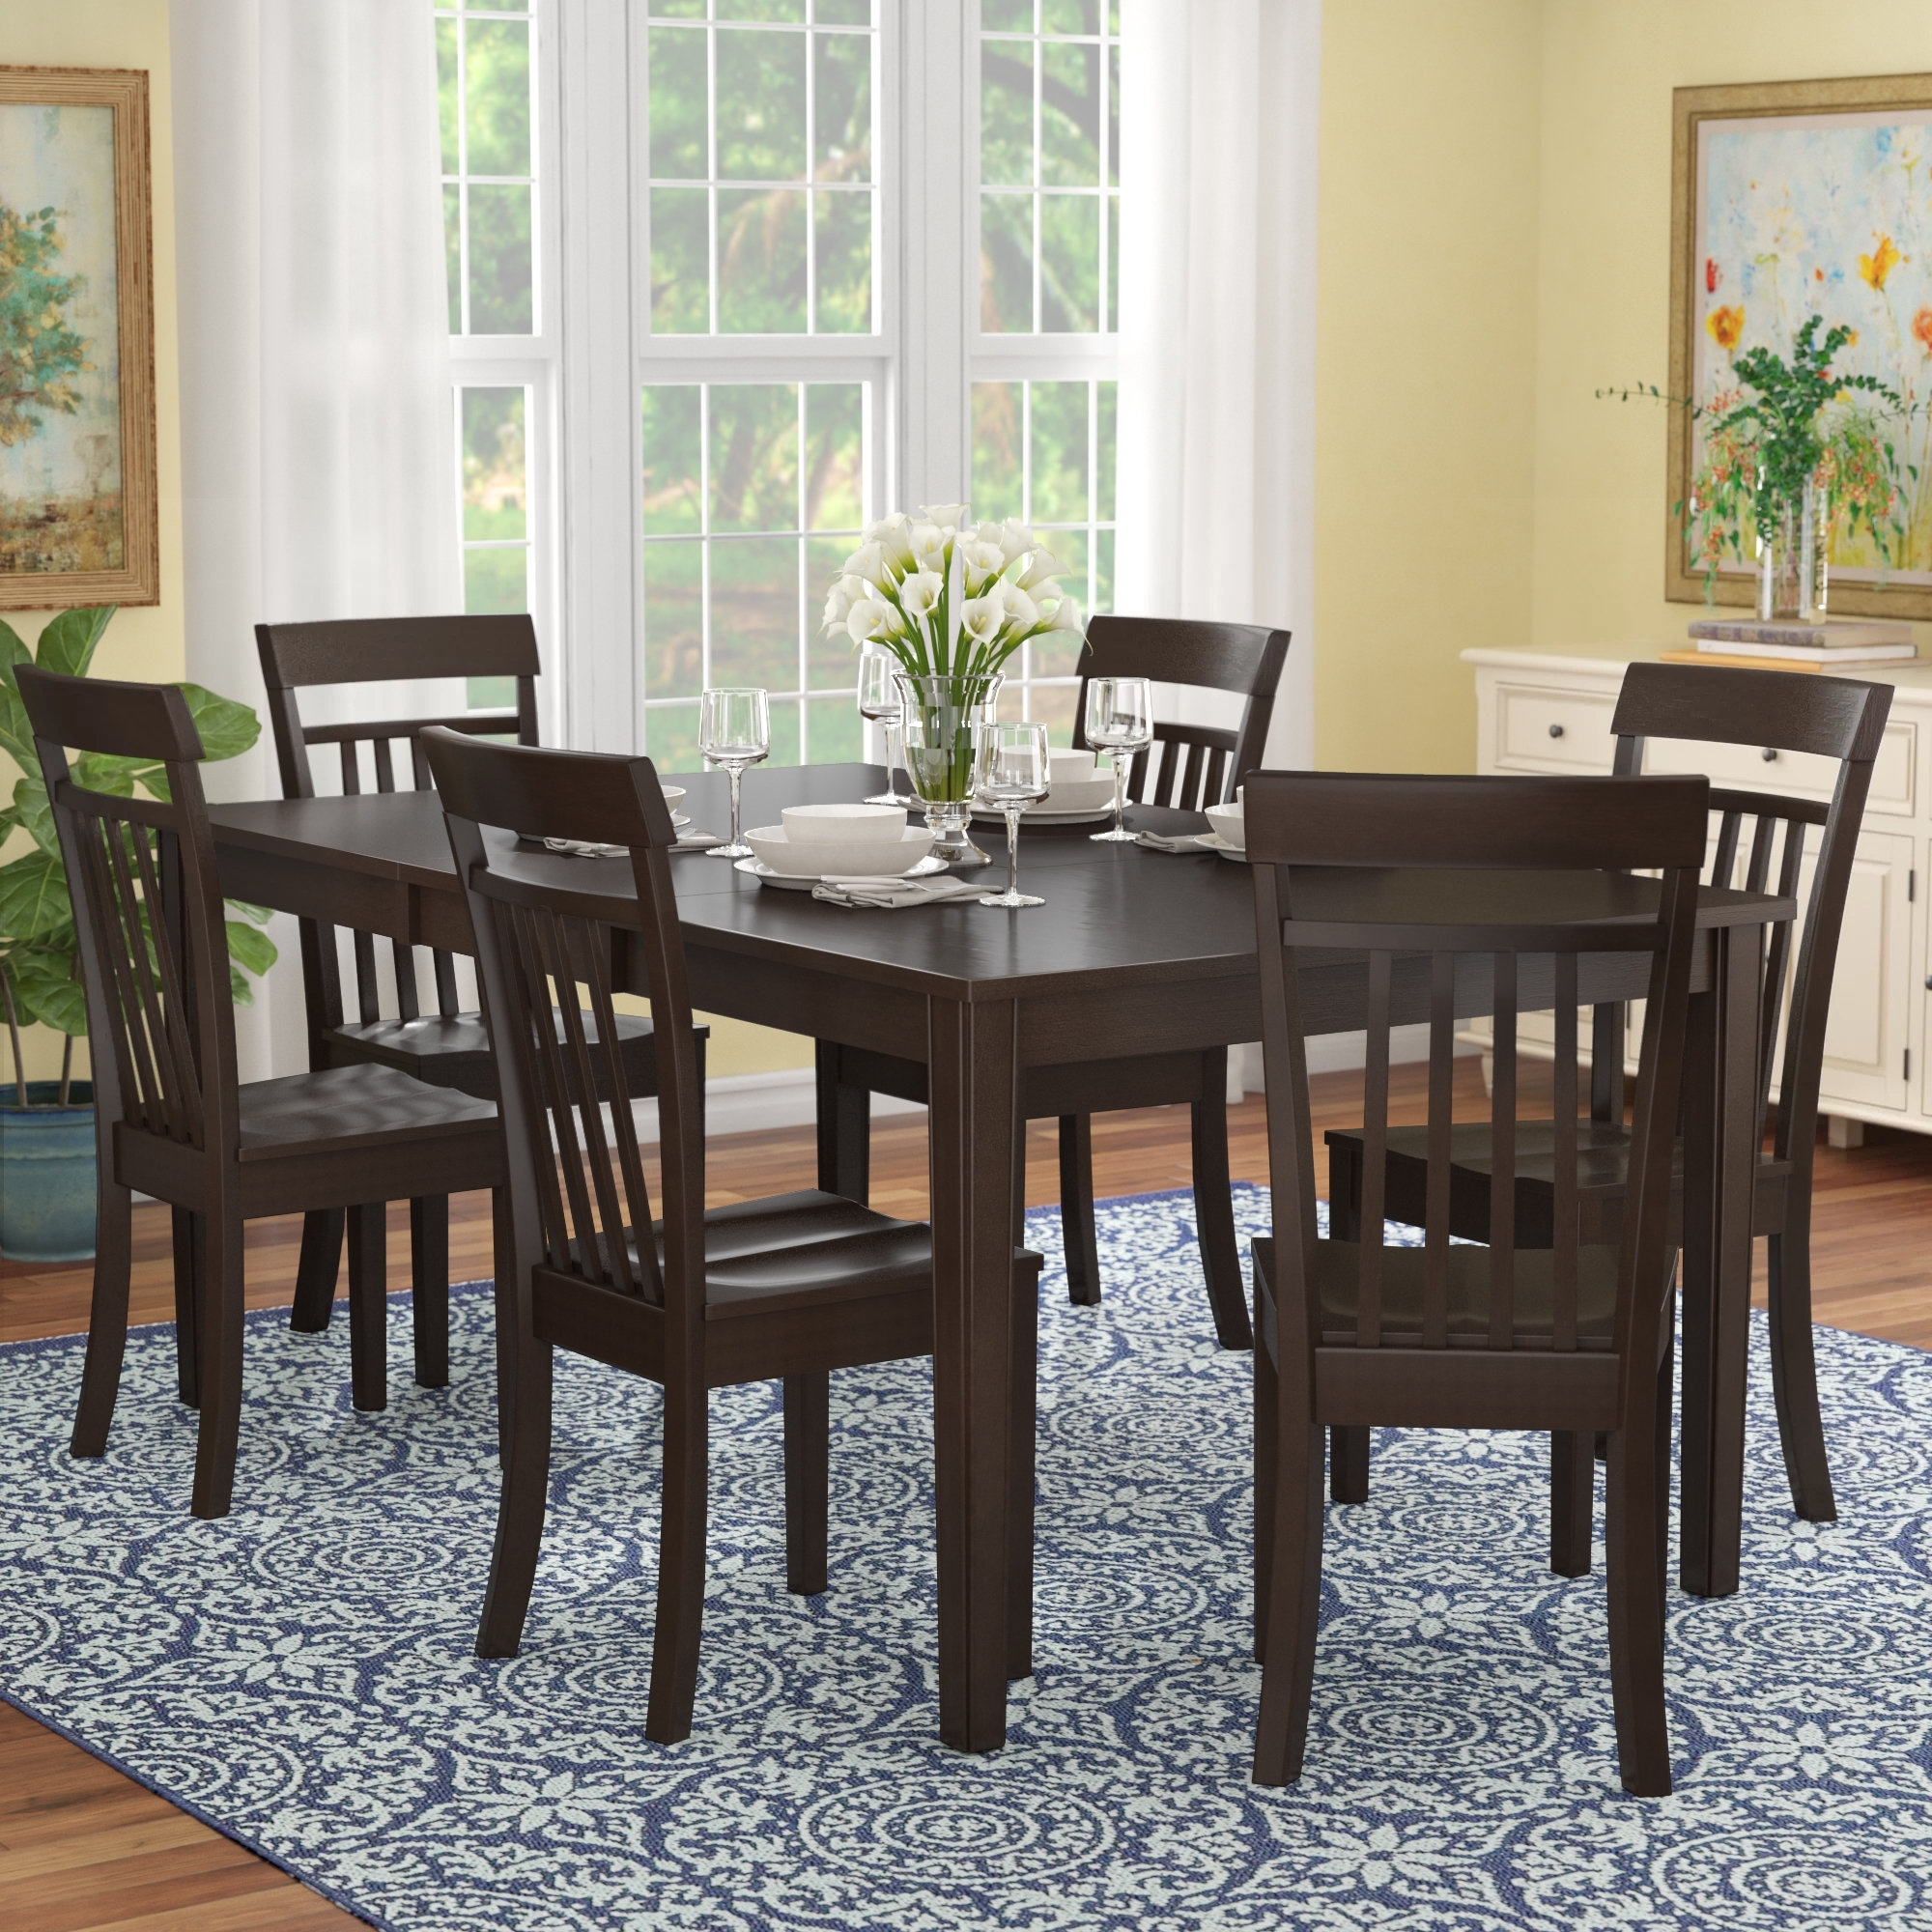 Red Barrel Studio Lindstrom 7 Piece Dining Set & Reviews | Wayfair Within Recent Craftsman 7 Piece Rectangle Extension Dining Sets With Side Chairs (Photo 20 of 20)